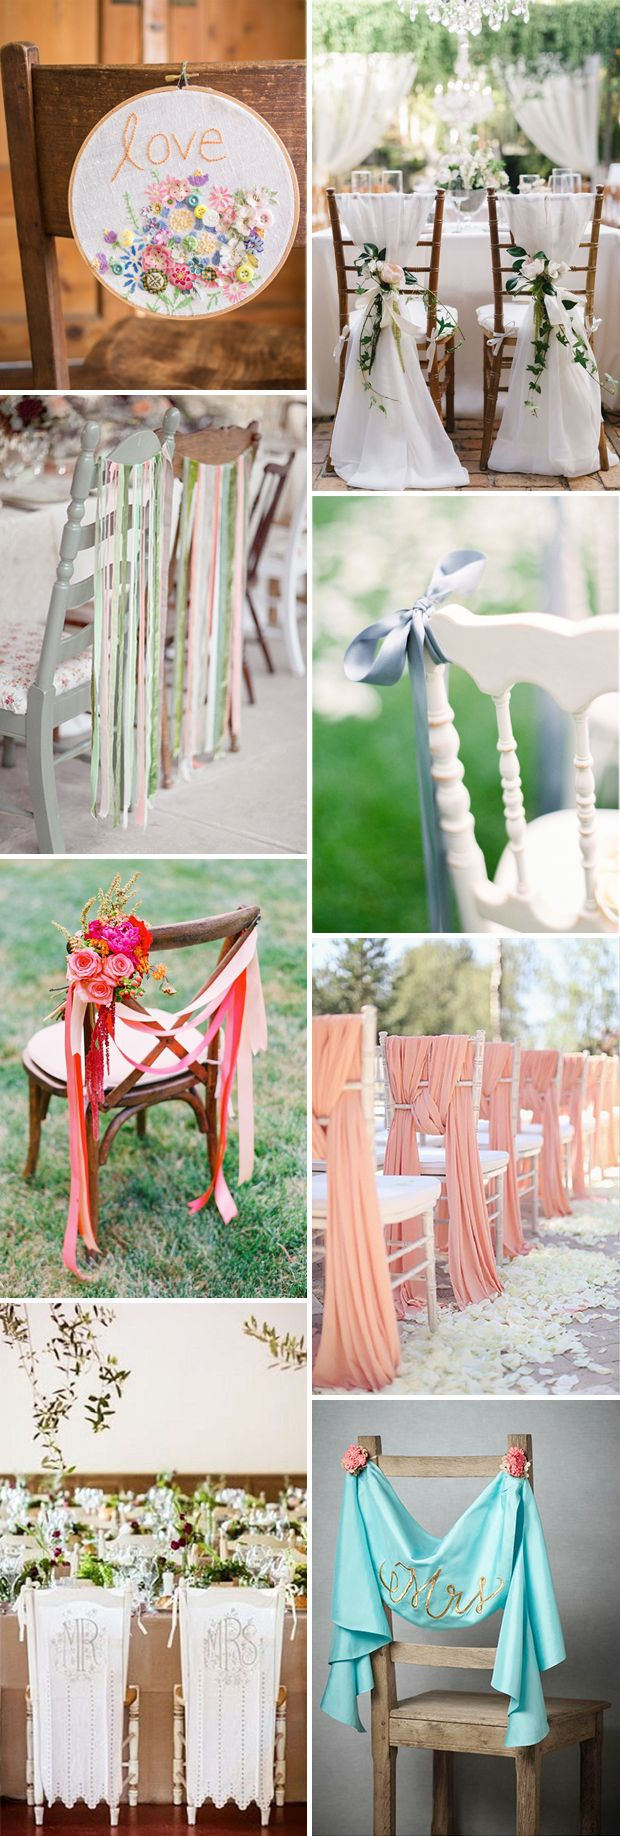 Fabric and ribbon wedding chair decor // see them all on www.onefabday.com